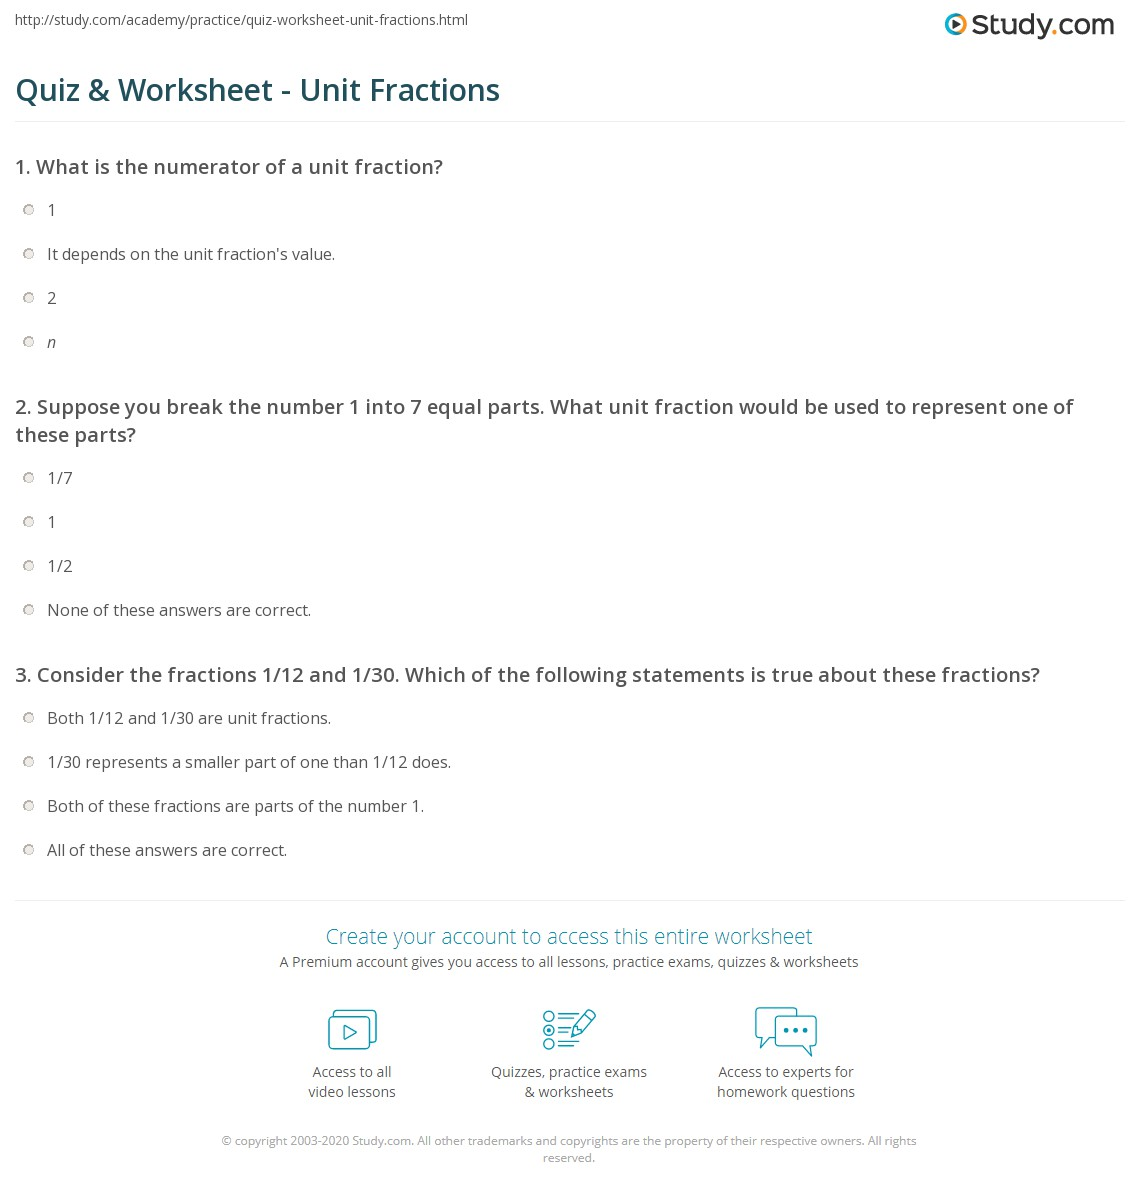 quiz & worksheet - unit fractions | study